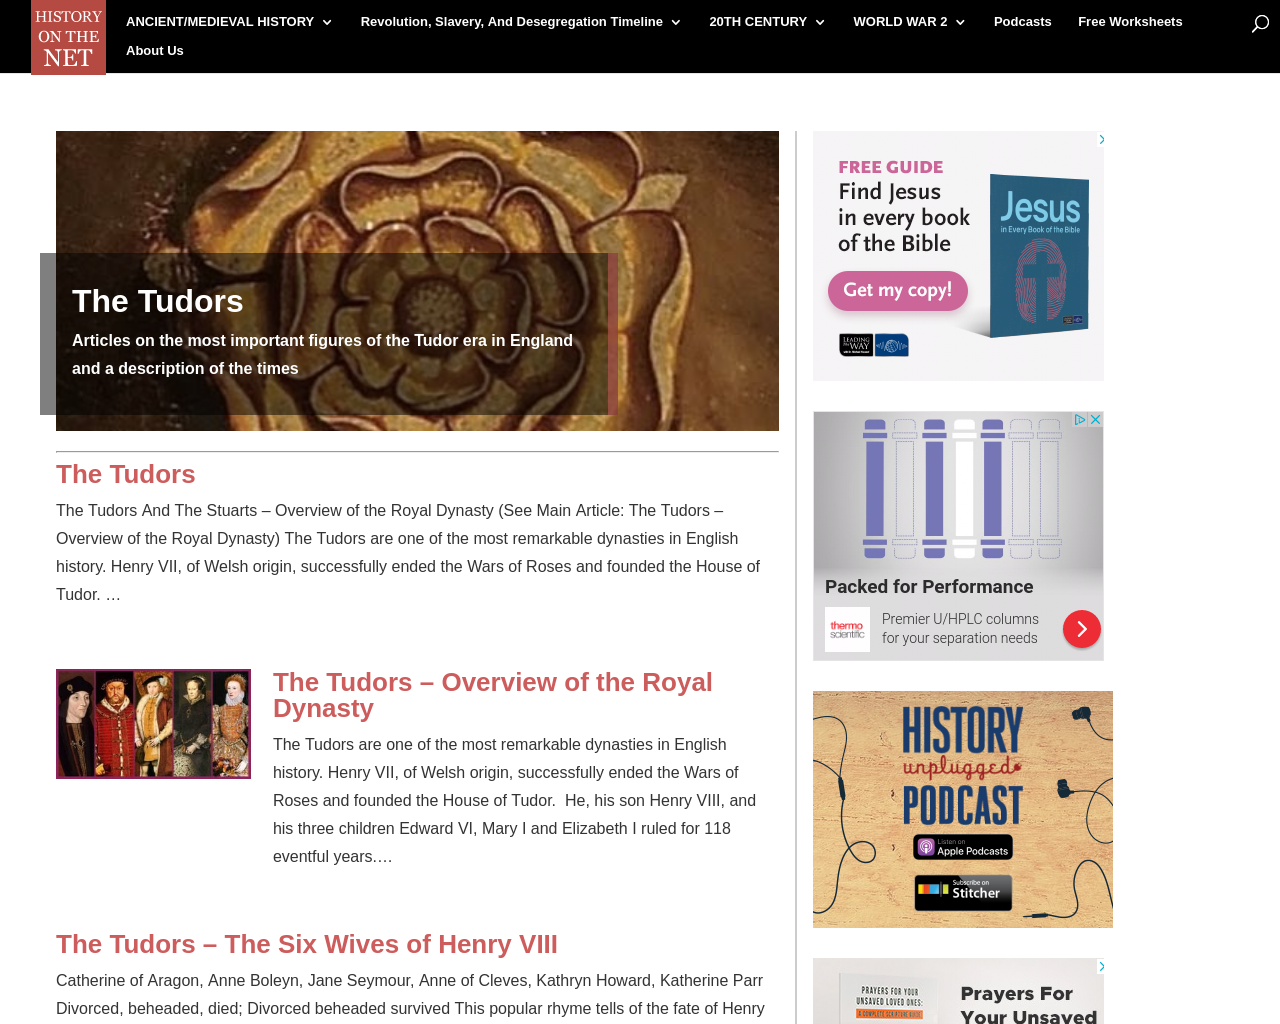 The Tudors: History on the Net